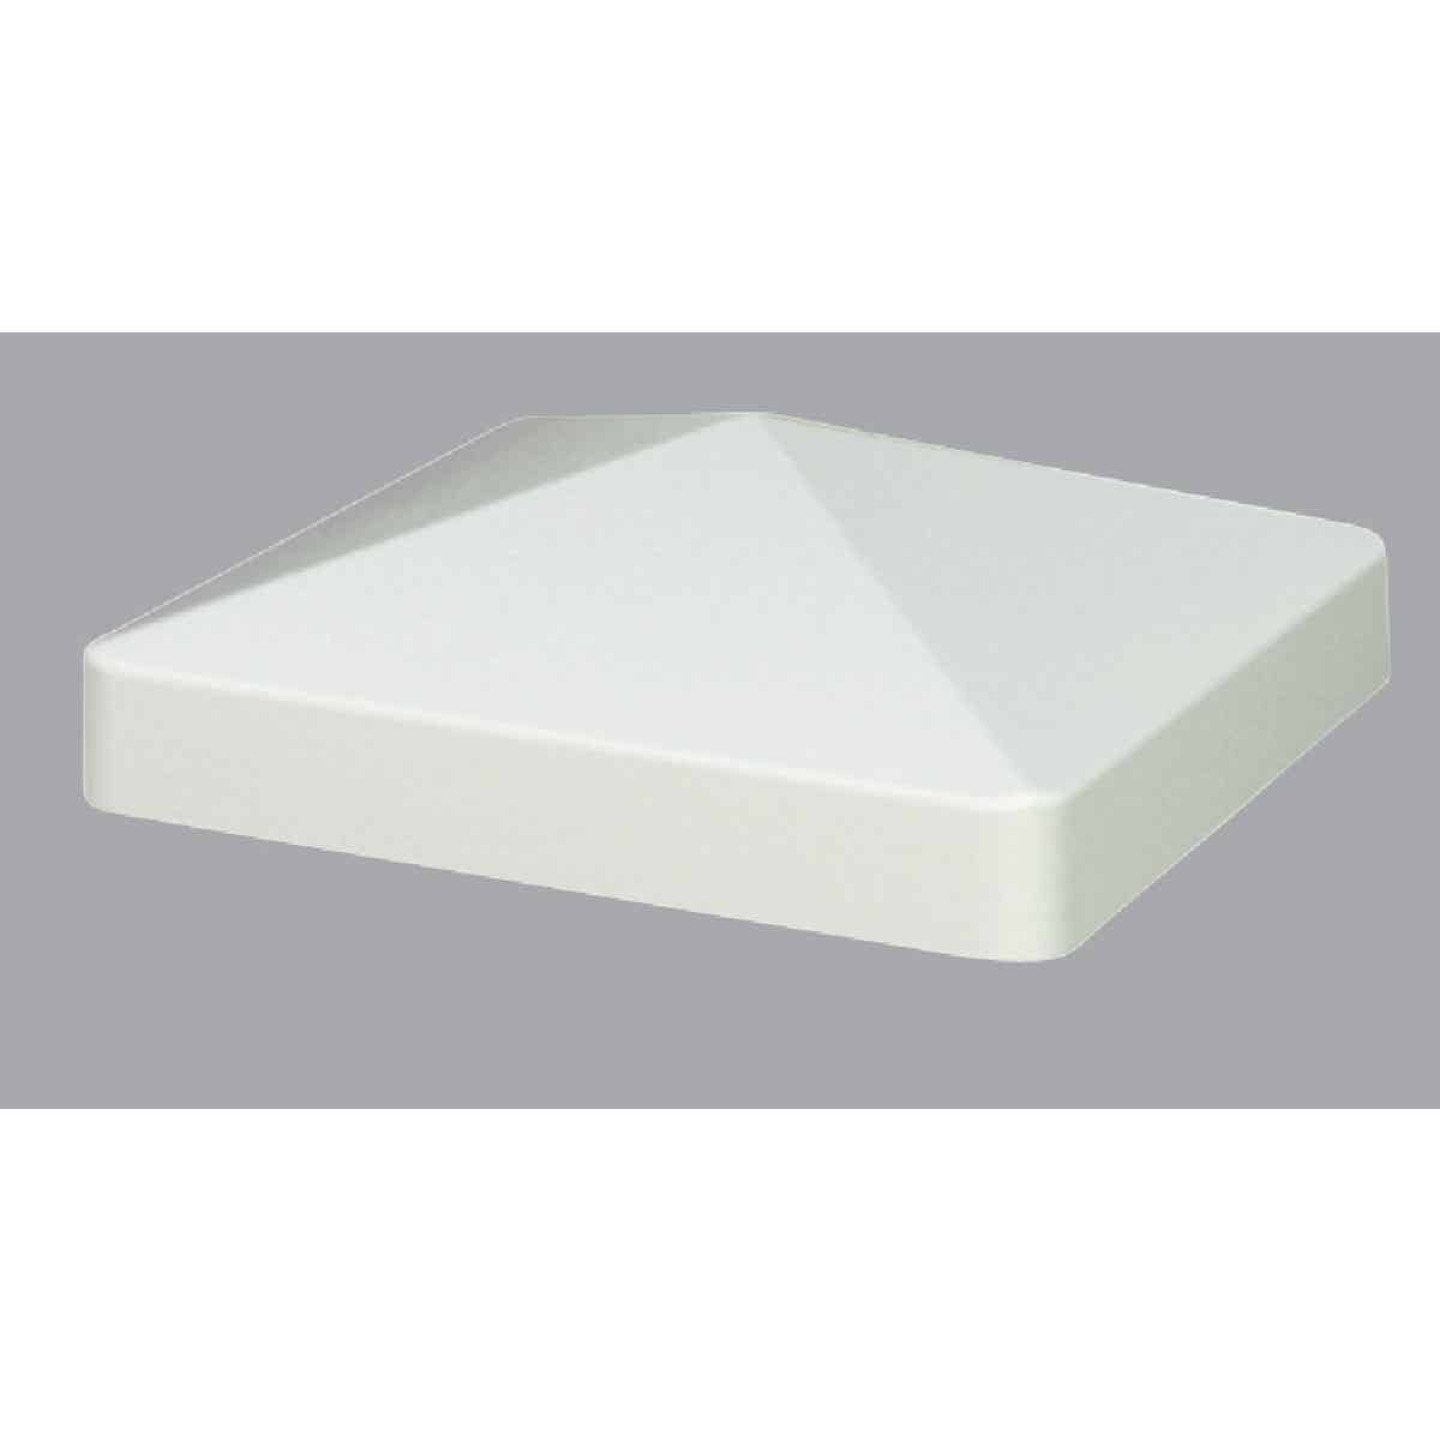 Outdoor Essentials 4 In. x 4 In. White Pyramid Vinyl Post Cap Image 1